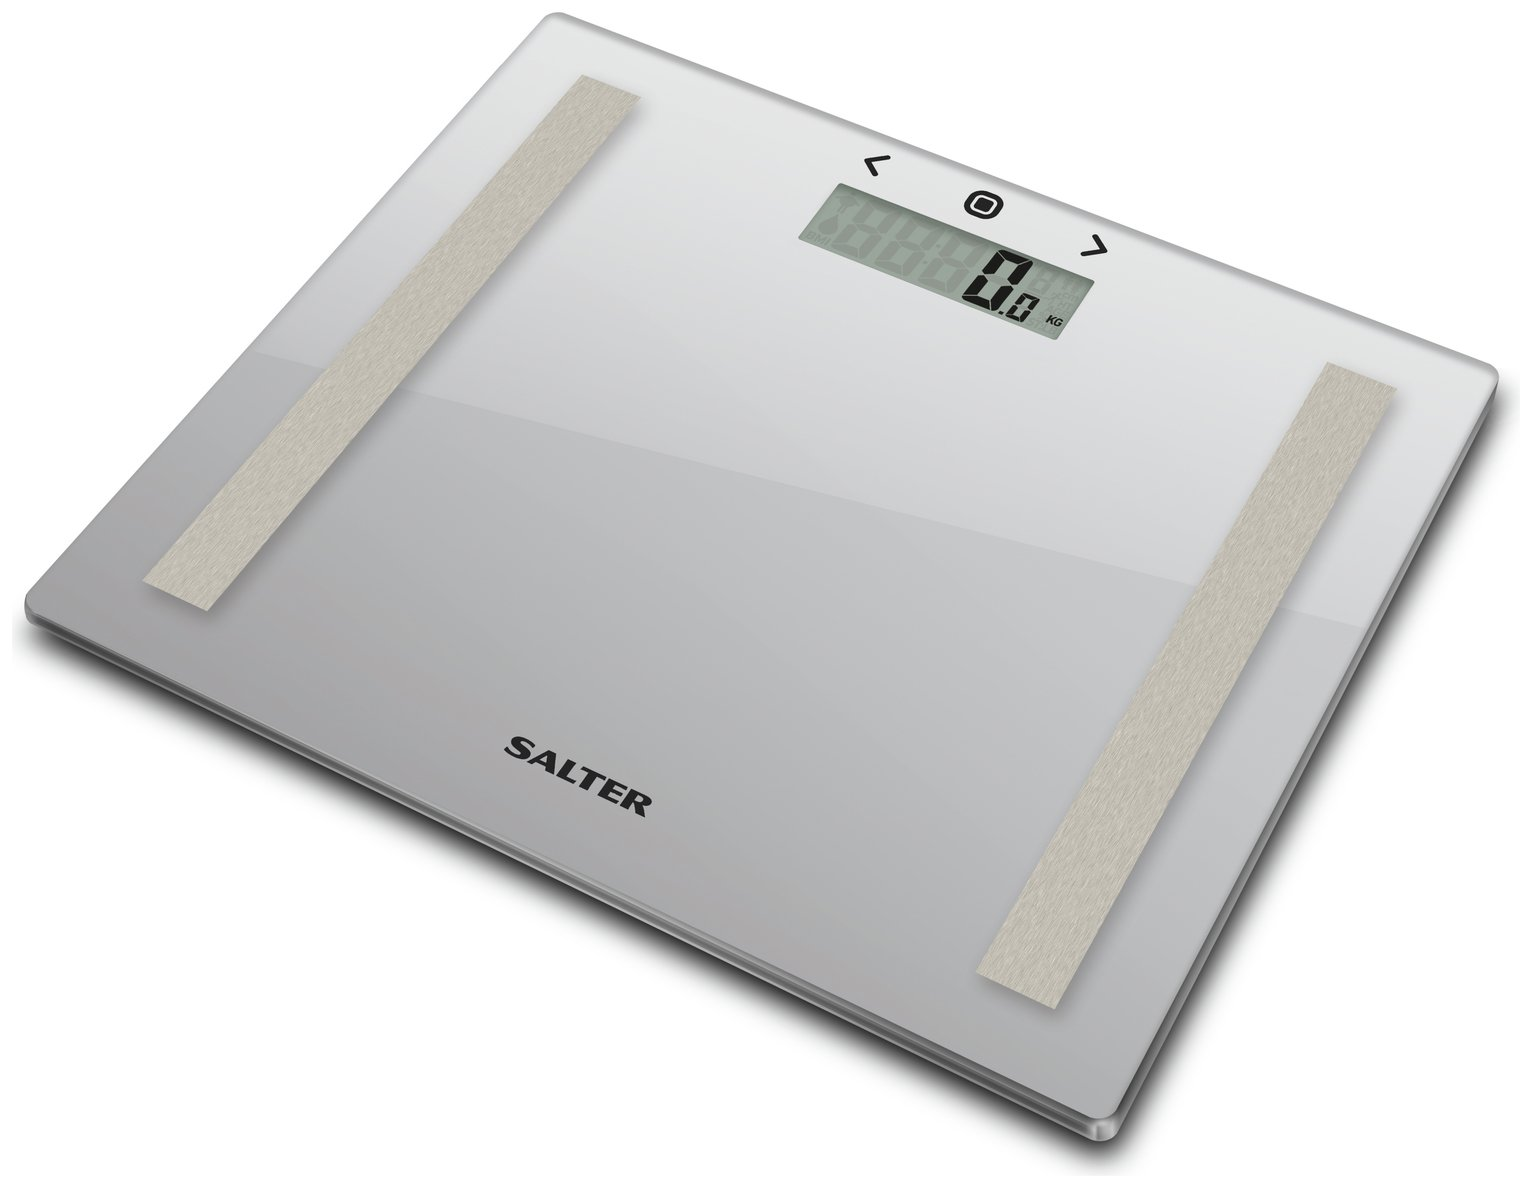 Salter Compact Glass Body Analyser Scale - Silver